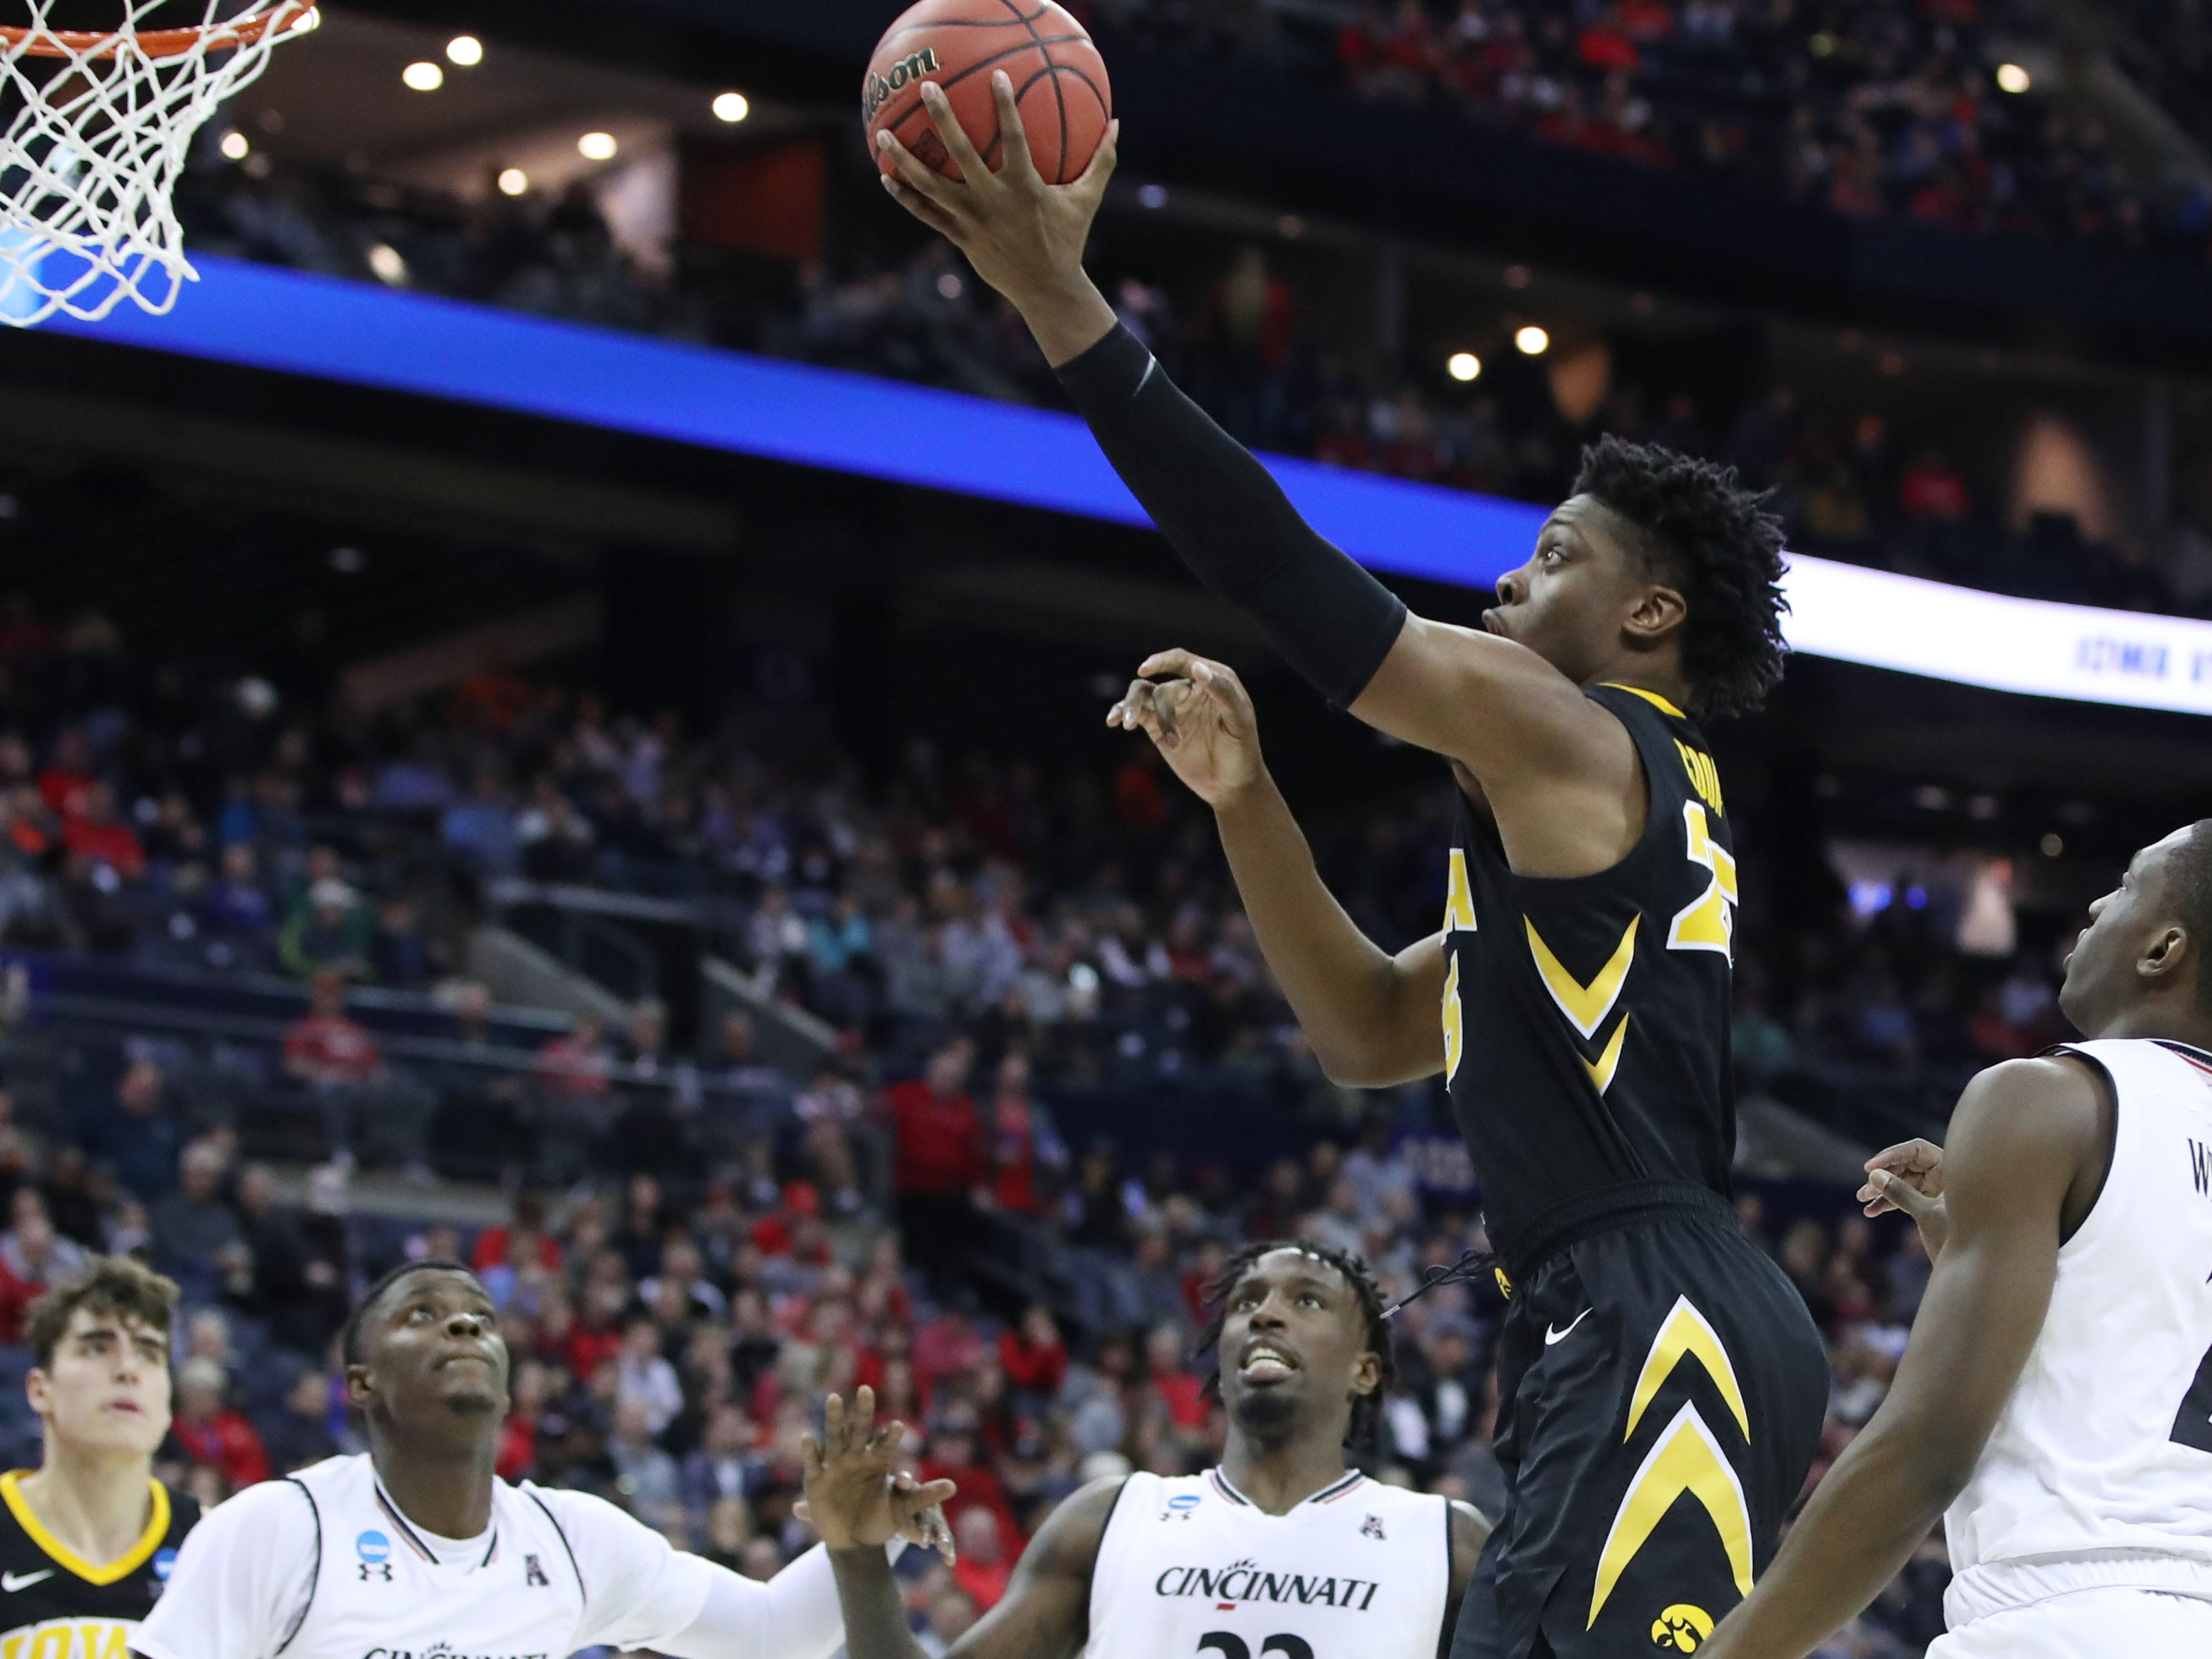 Iowa Hawkeyes forward Tyler Cook (25) goes to the basket in the second half against the Cincinnati Bearcats in the first round of the 2019 NCAA Tournament at Nationwide Arena on March 22, 2019.